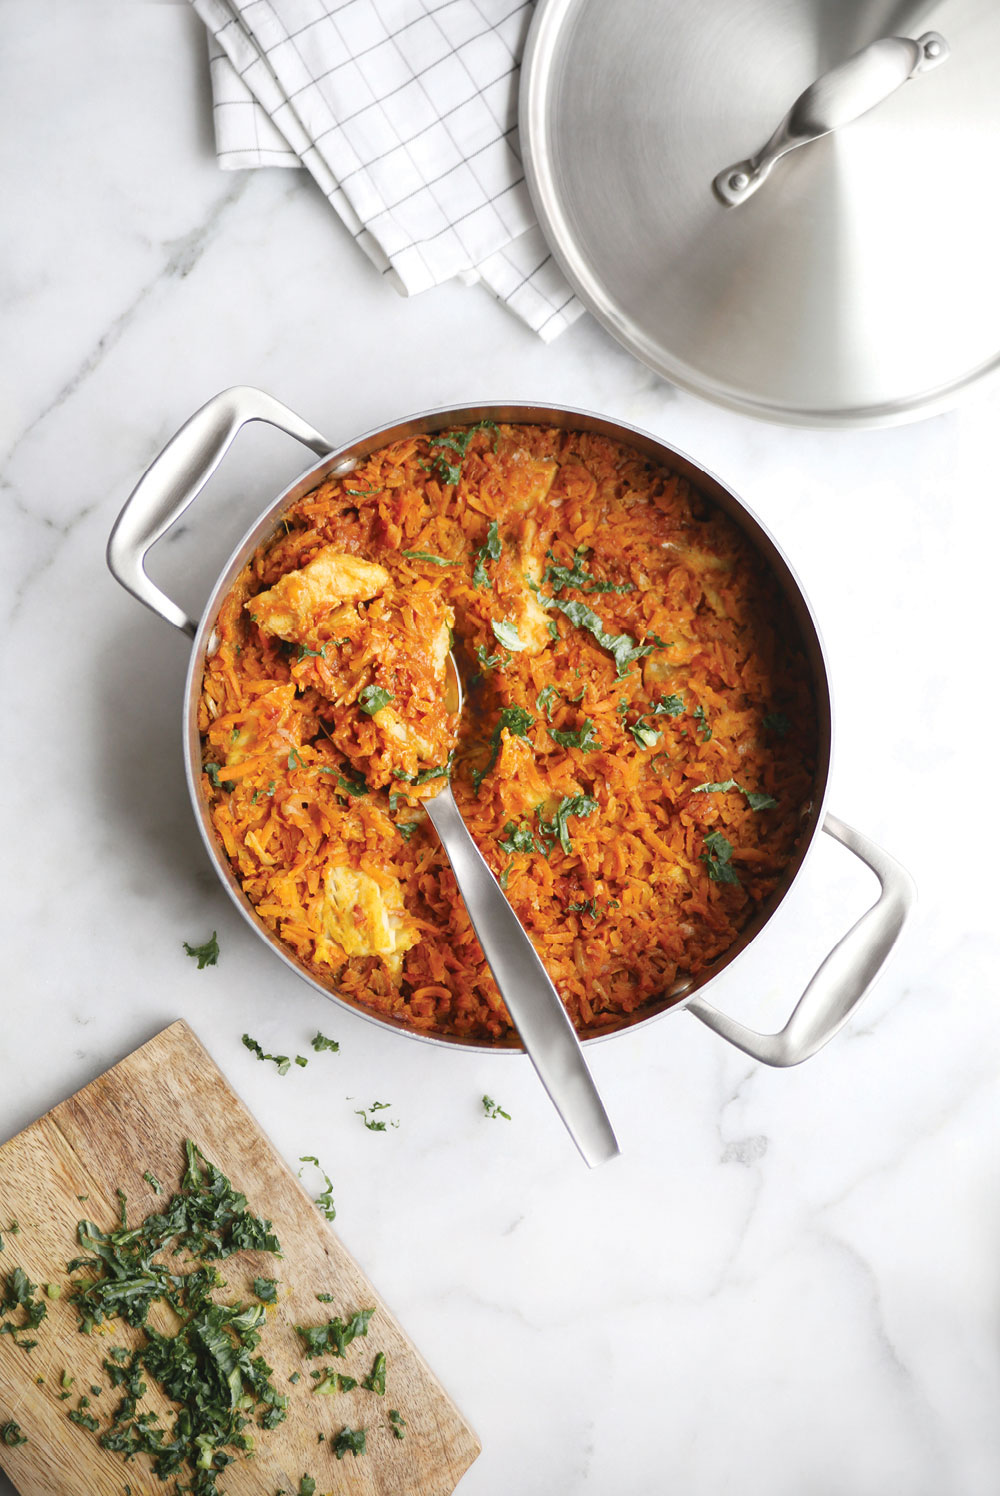 Shredded-Carrot-Fish-Casserole-6